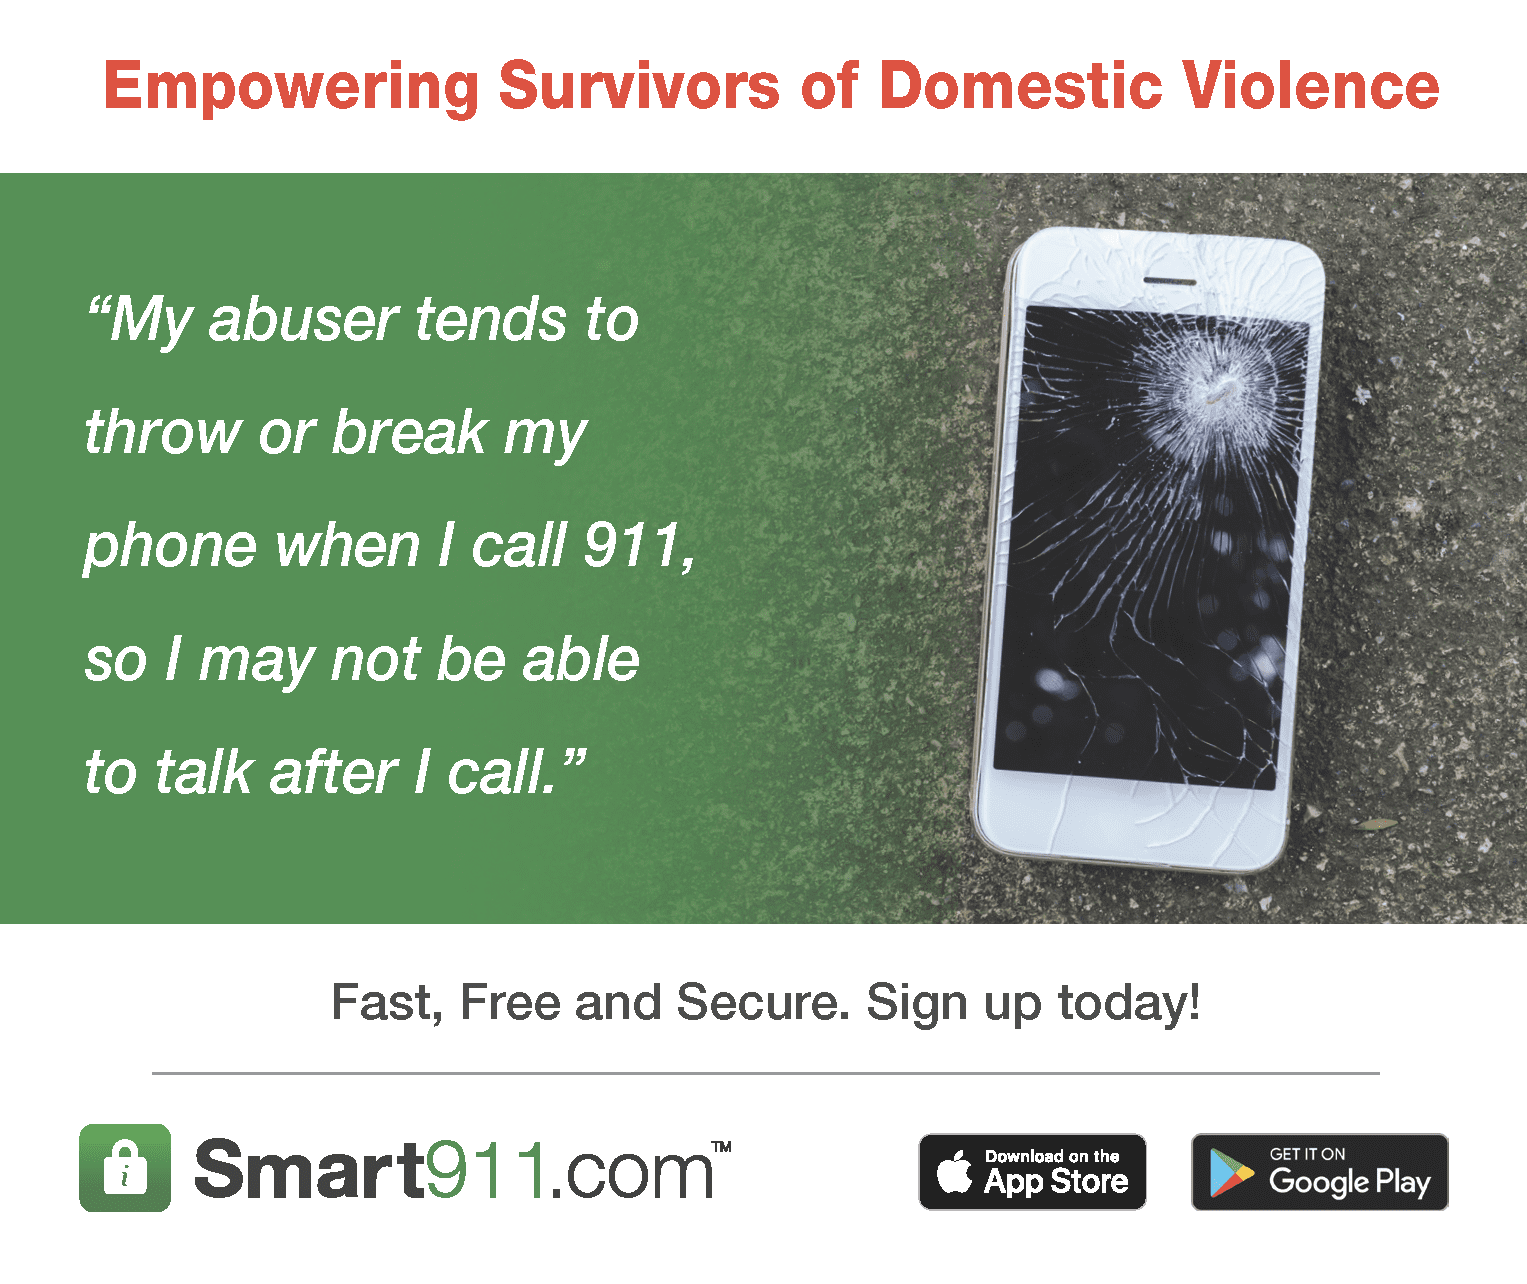 Smart911 Domestic Violence Outreach Kit